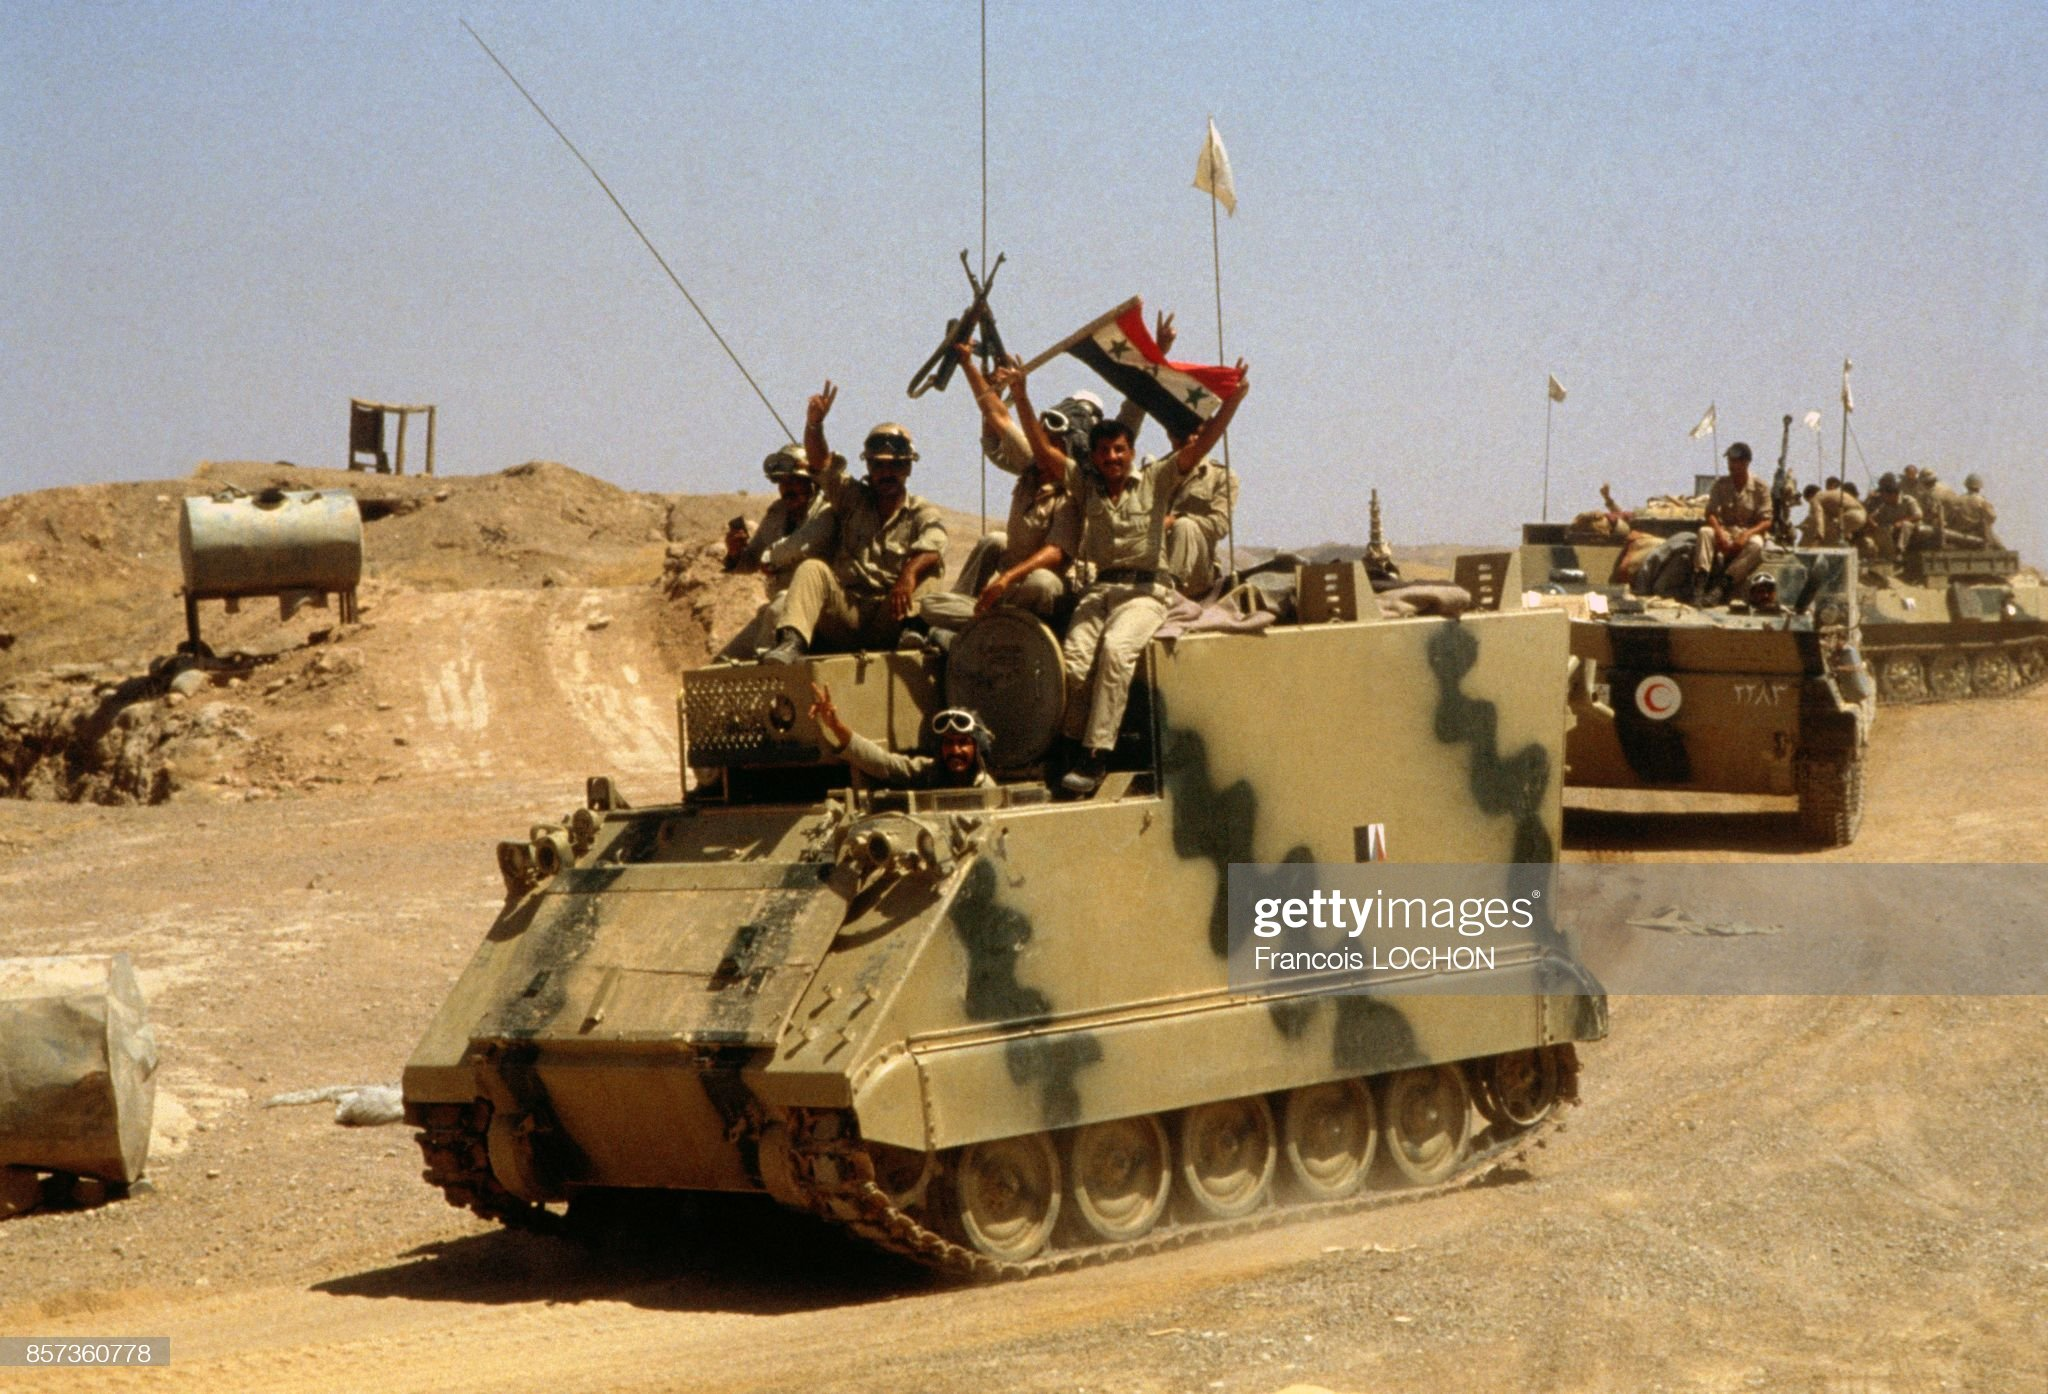 https://media.gettyimages.com/photos/iraqi-troops-seizing-tanks-from-the-iran-army-in-zubeidat-area-on-19-picture-id857360778?s=2048x2048